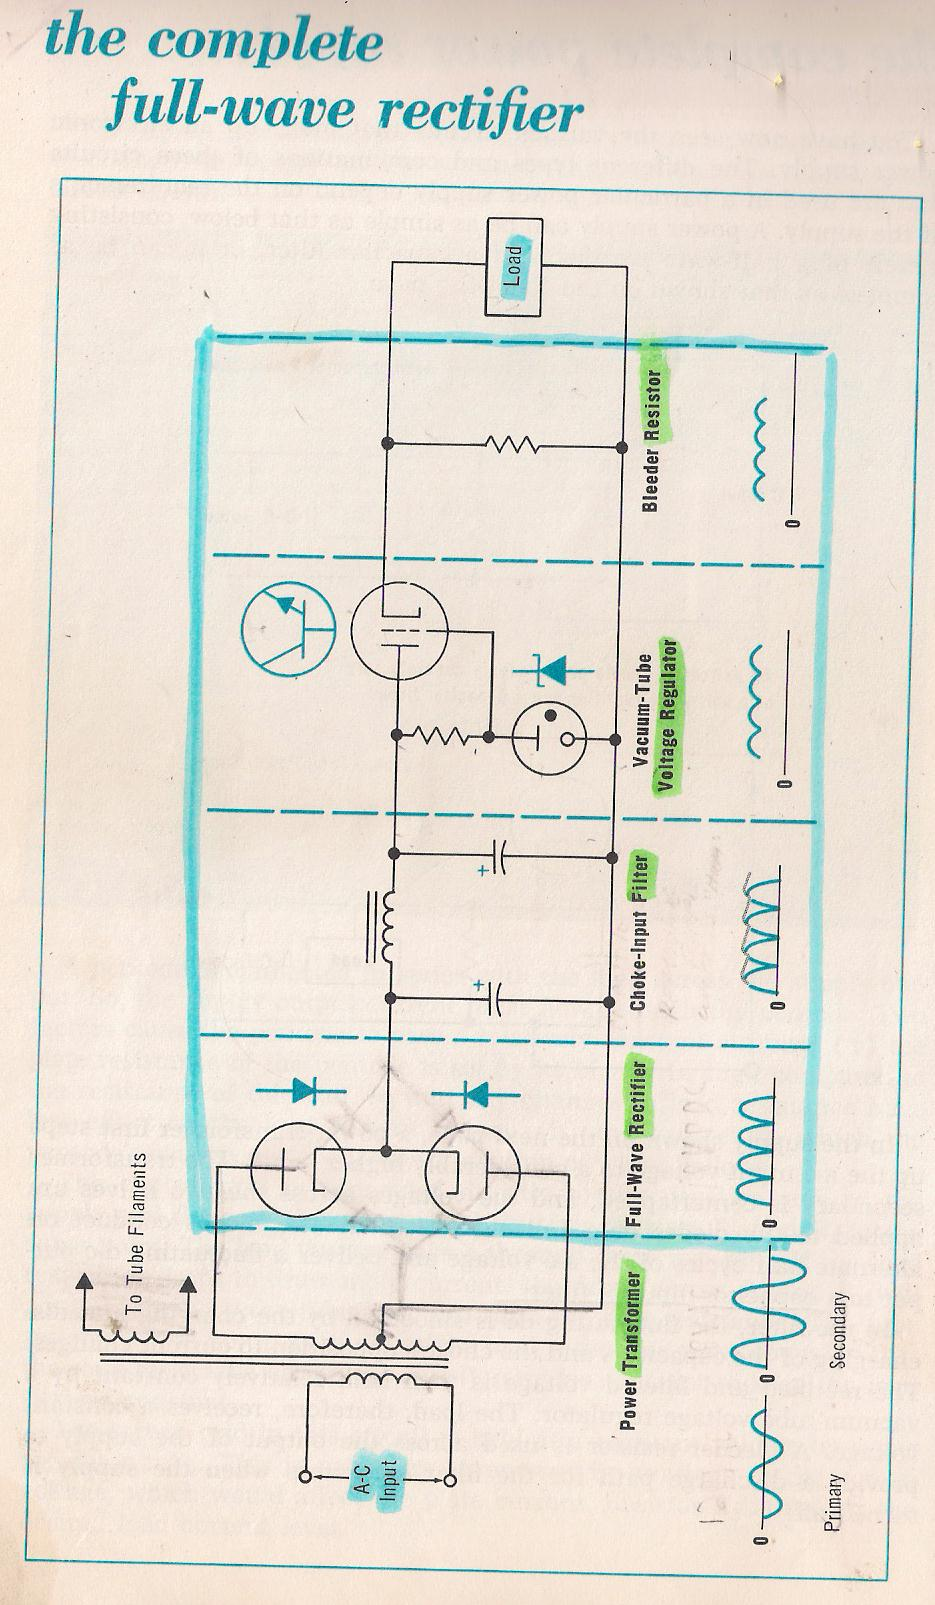 Power Supplies Full Wave Rectifier Circuit With Averaging Filter Pictures Supply 026 The Complete By Larry E Gugle K4rfe